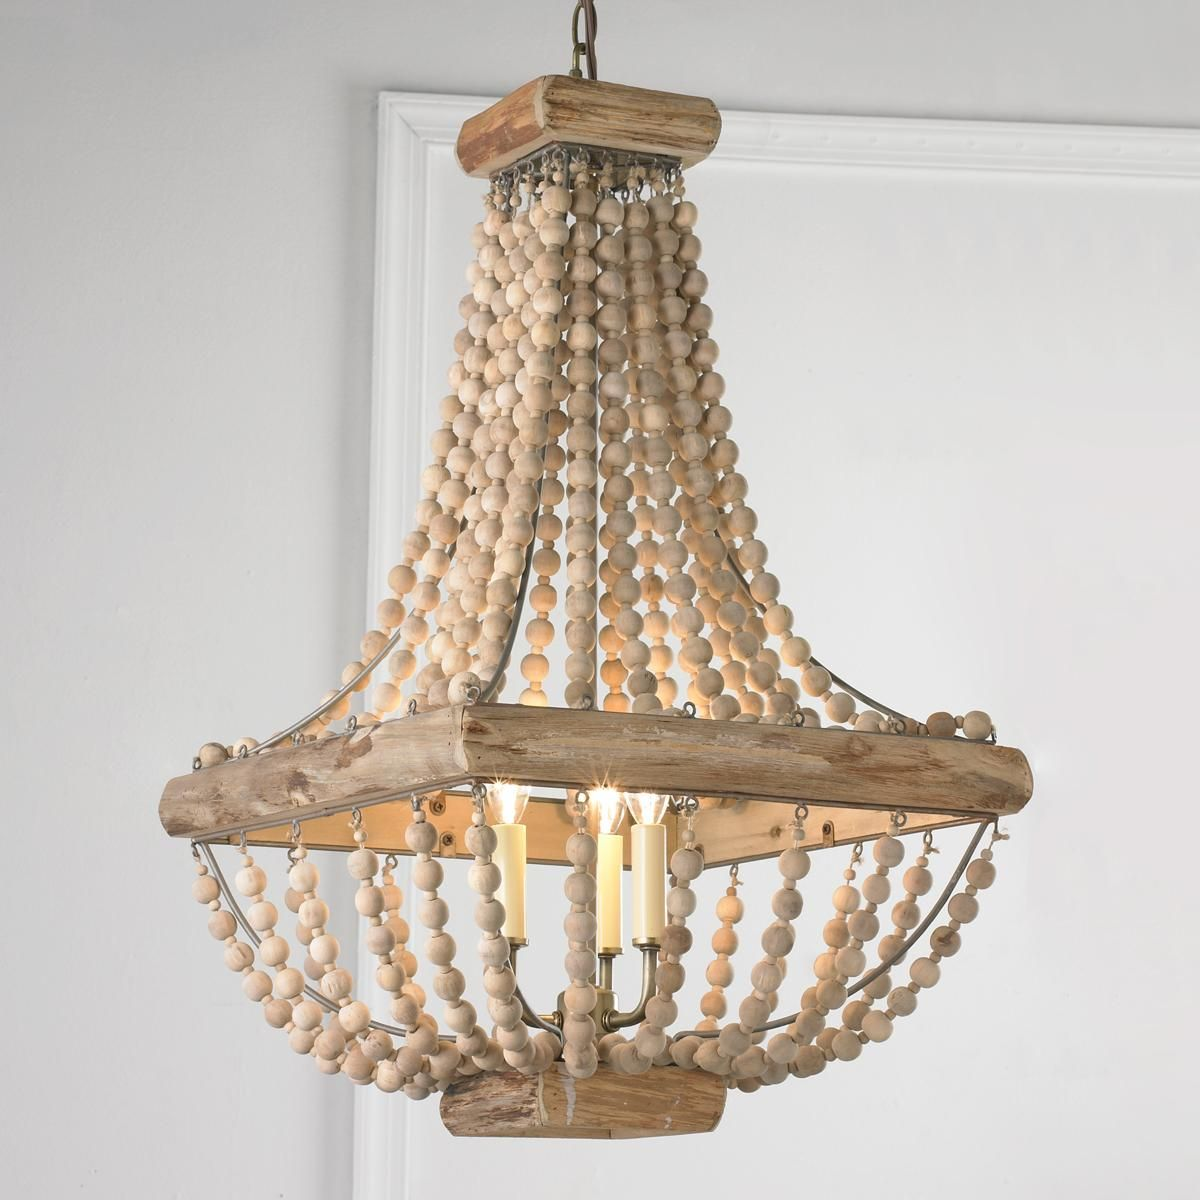 Wood Bead Chandelier From Romantic Bedrooms To Garden Solarium Spaces This Helps